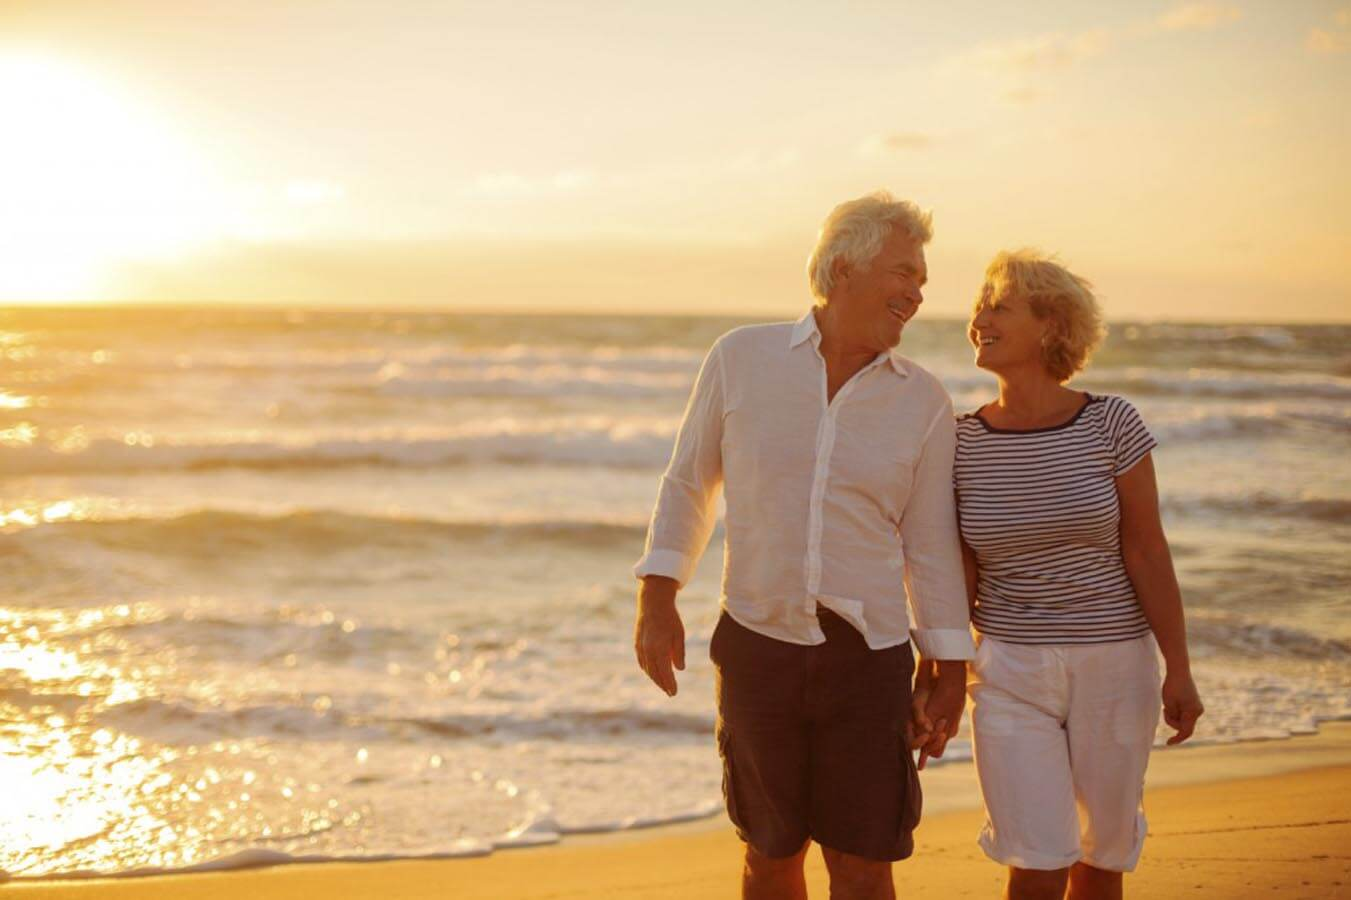 Can you enter retirement without debt?